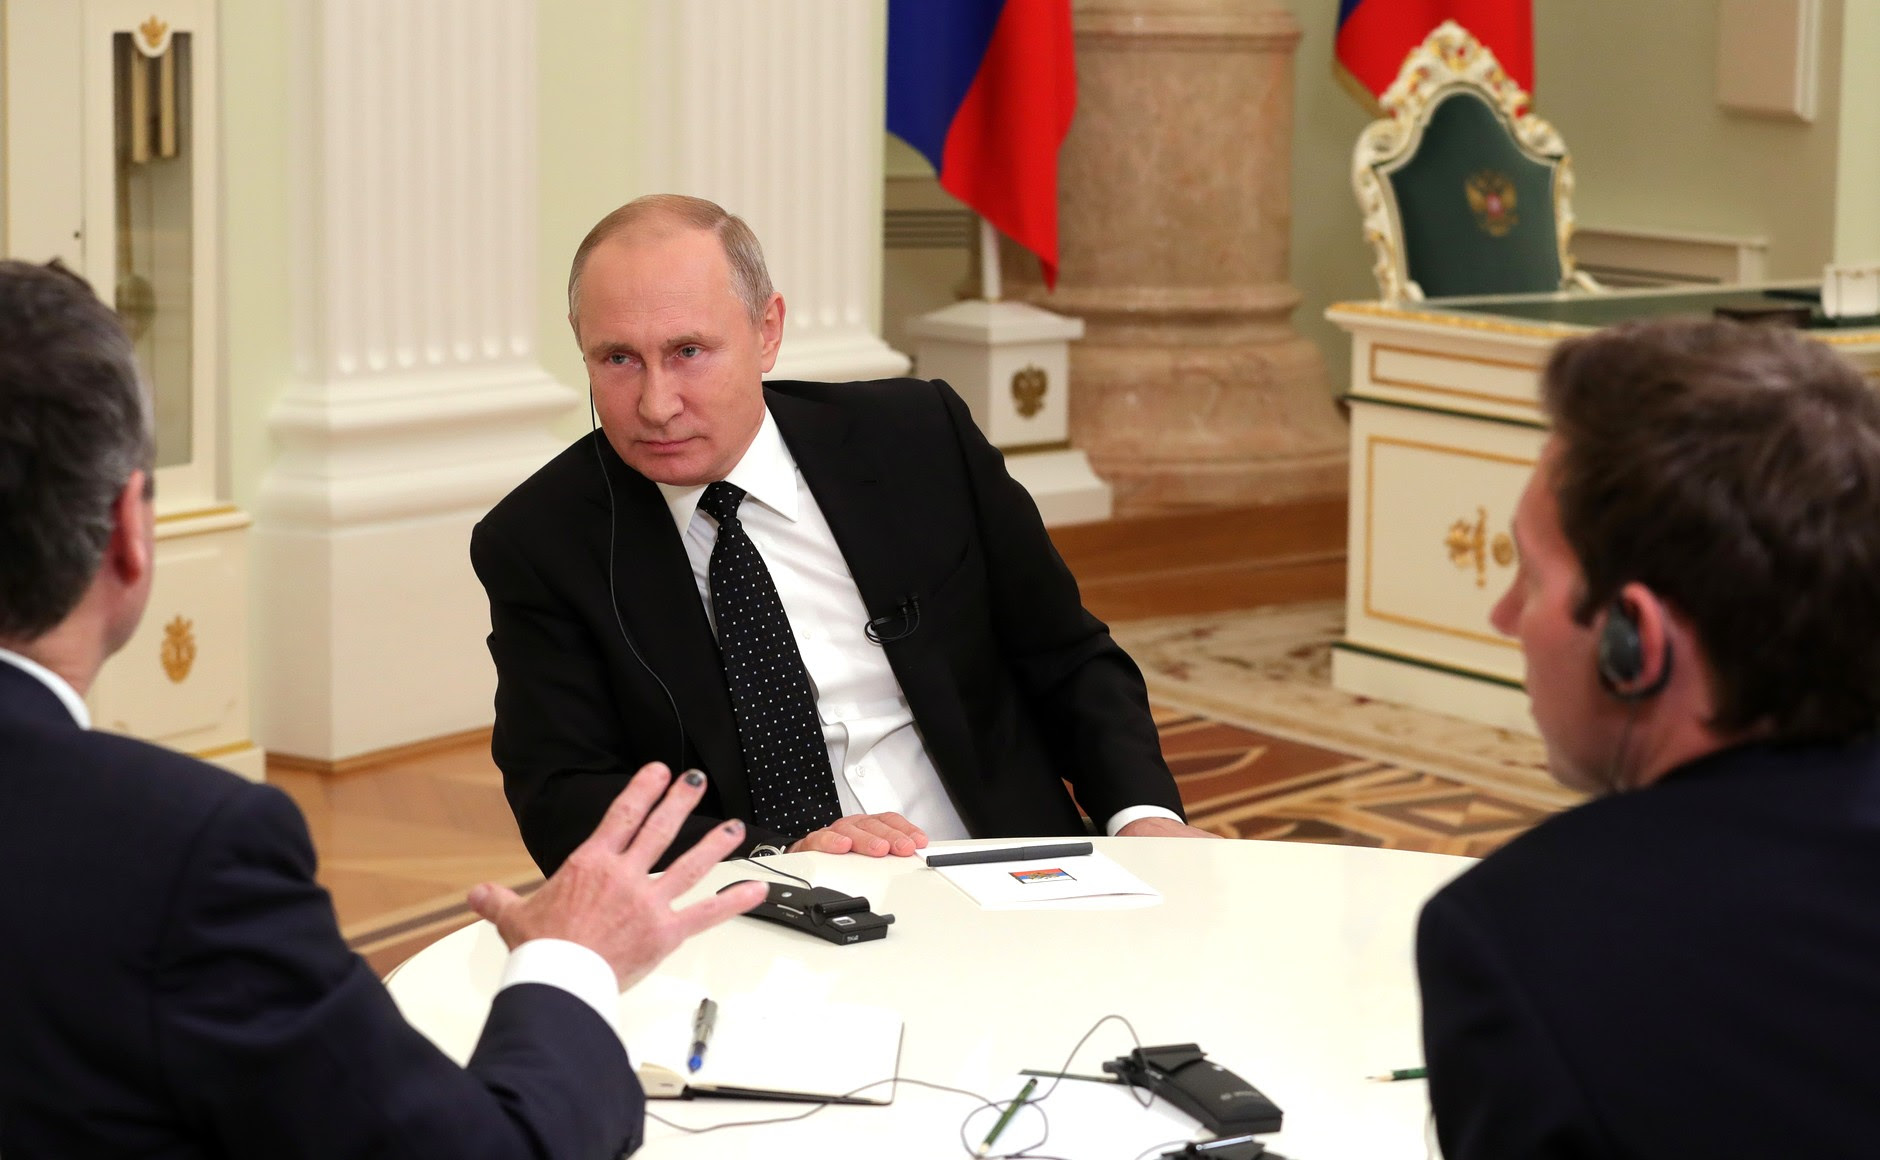 Vladimir Putin's interview with The Financial Times.